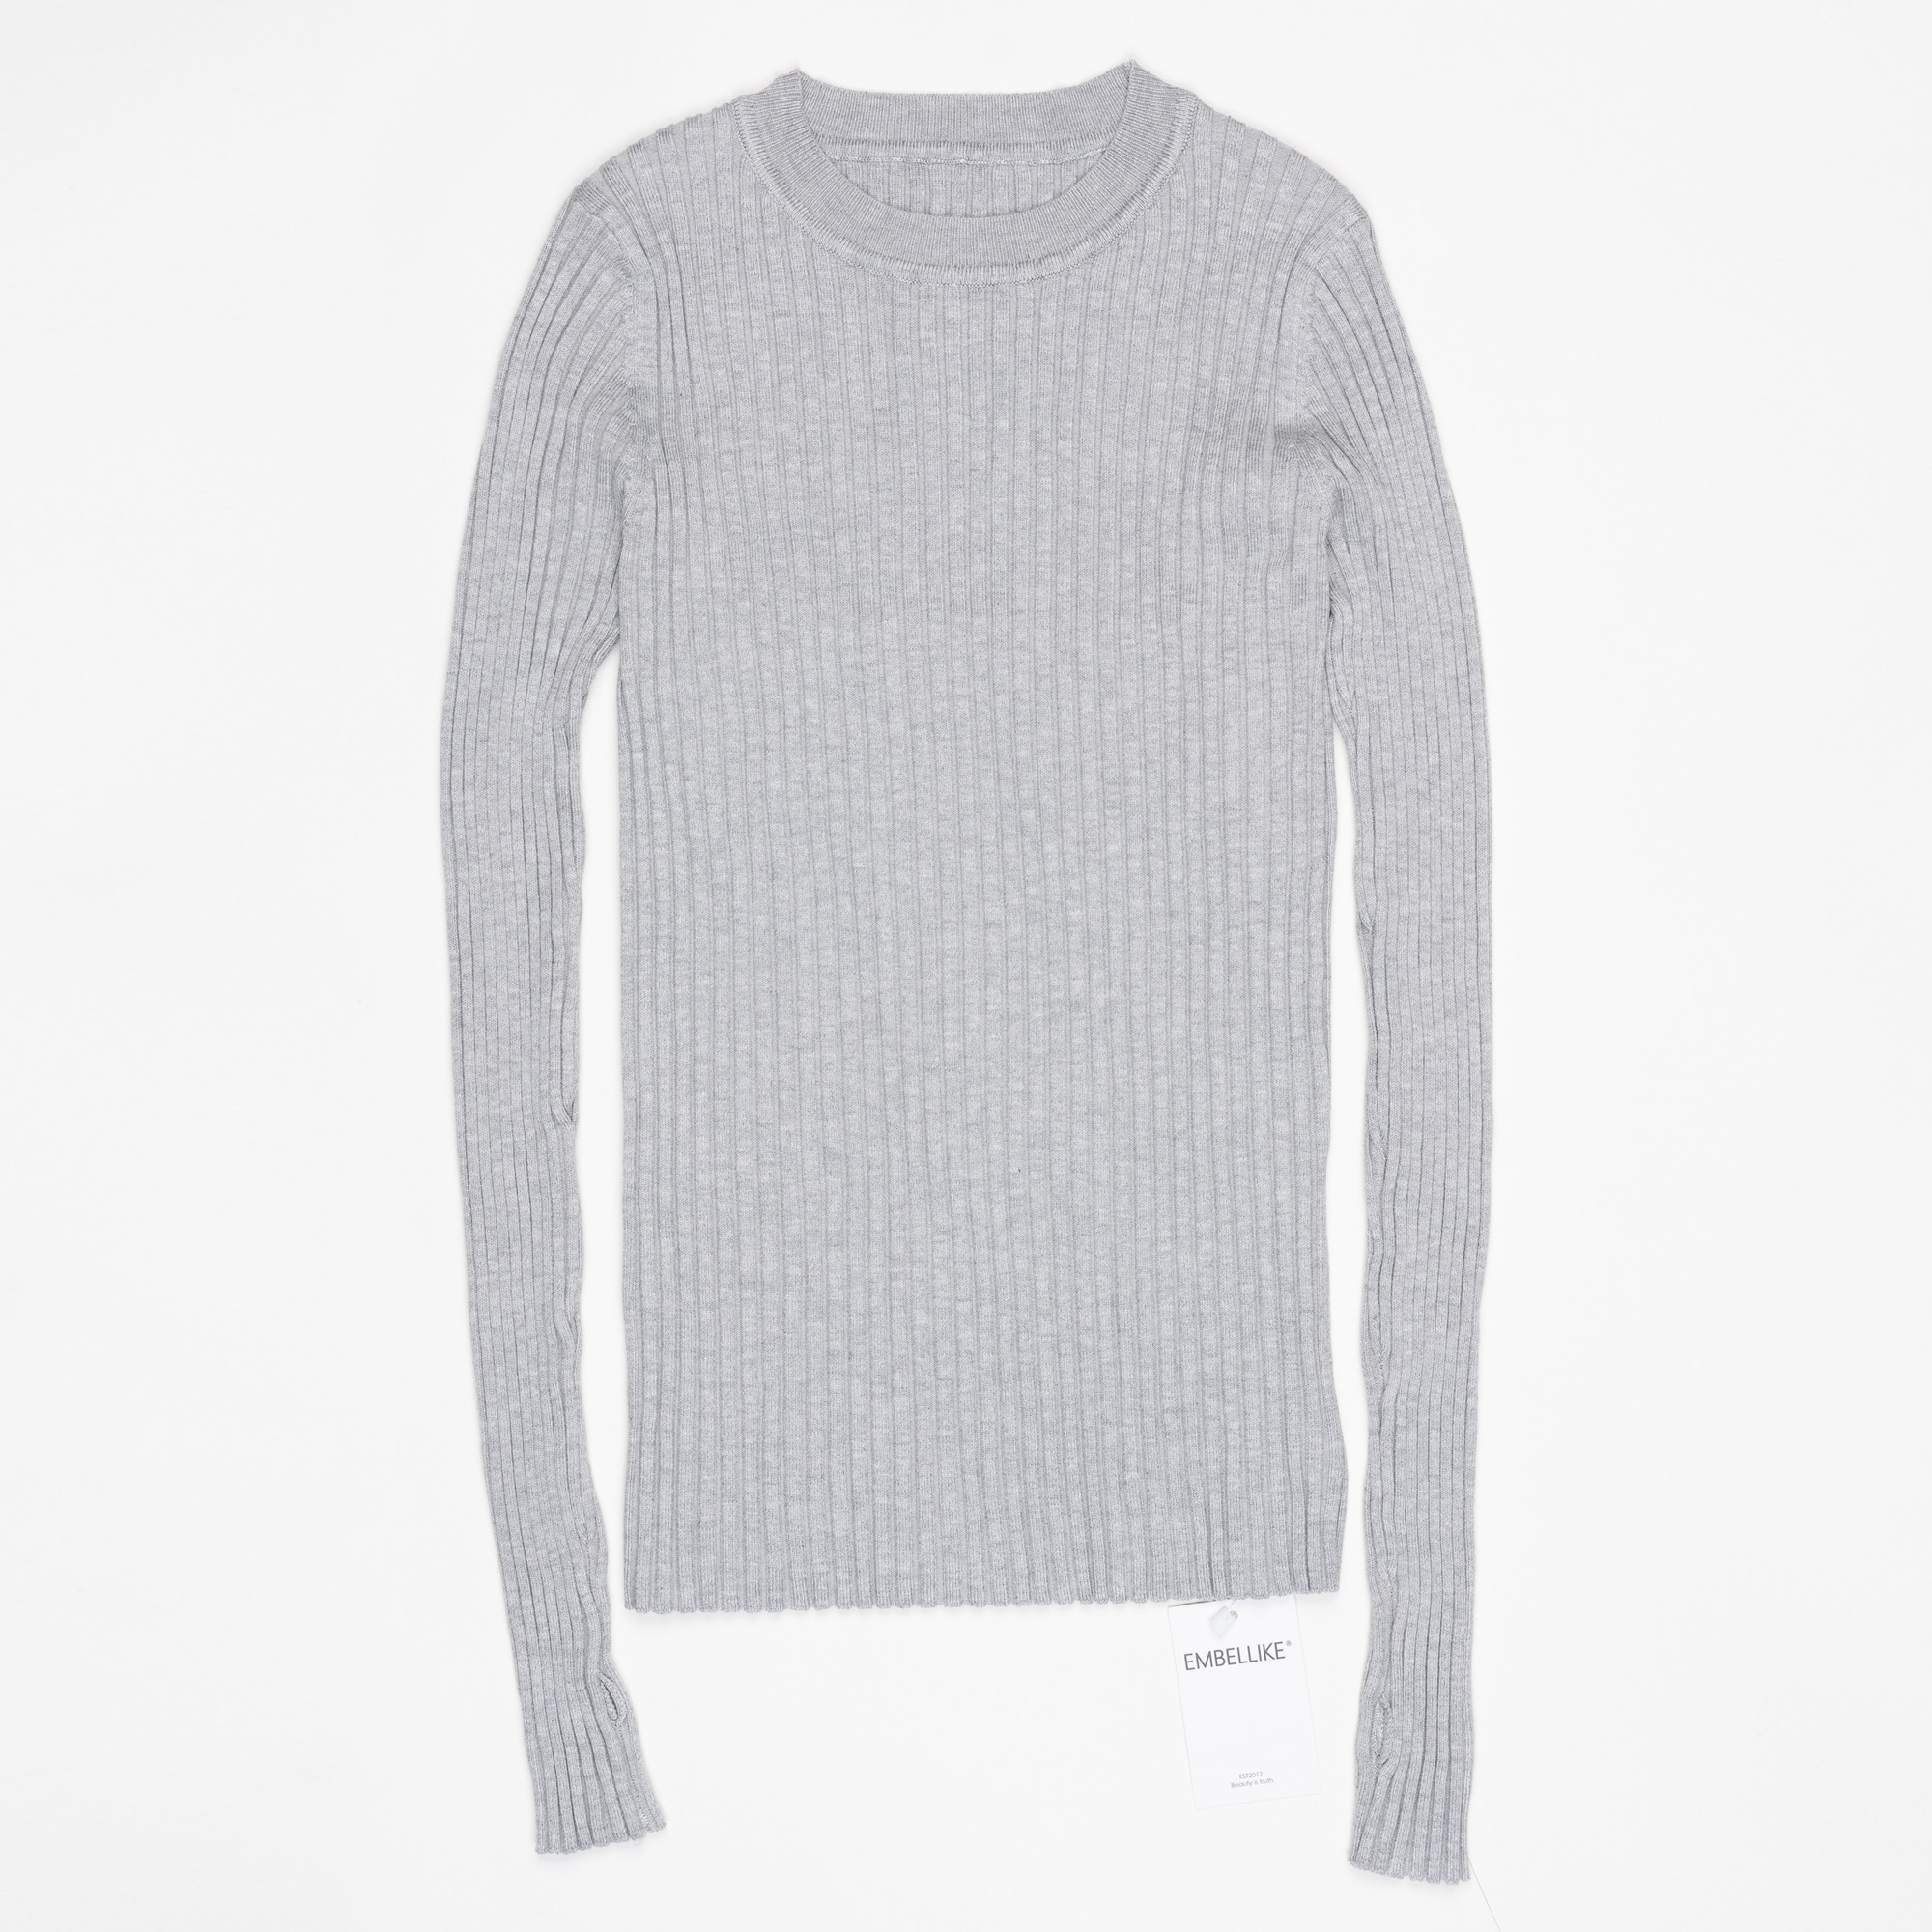 Women Sweater Pullover Basic Ribbed Sweaters Cotton Tops Knitted Solid Crew Neck With Thumb Hole 8